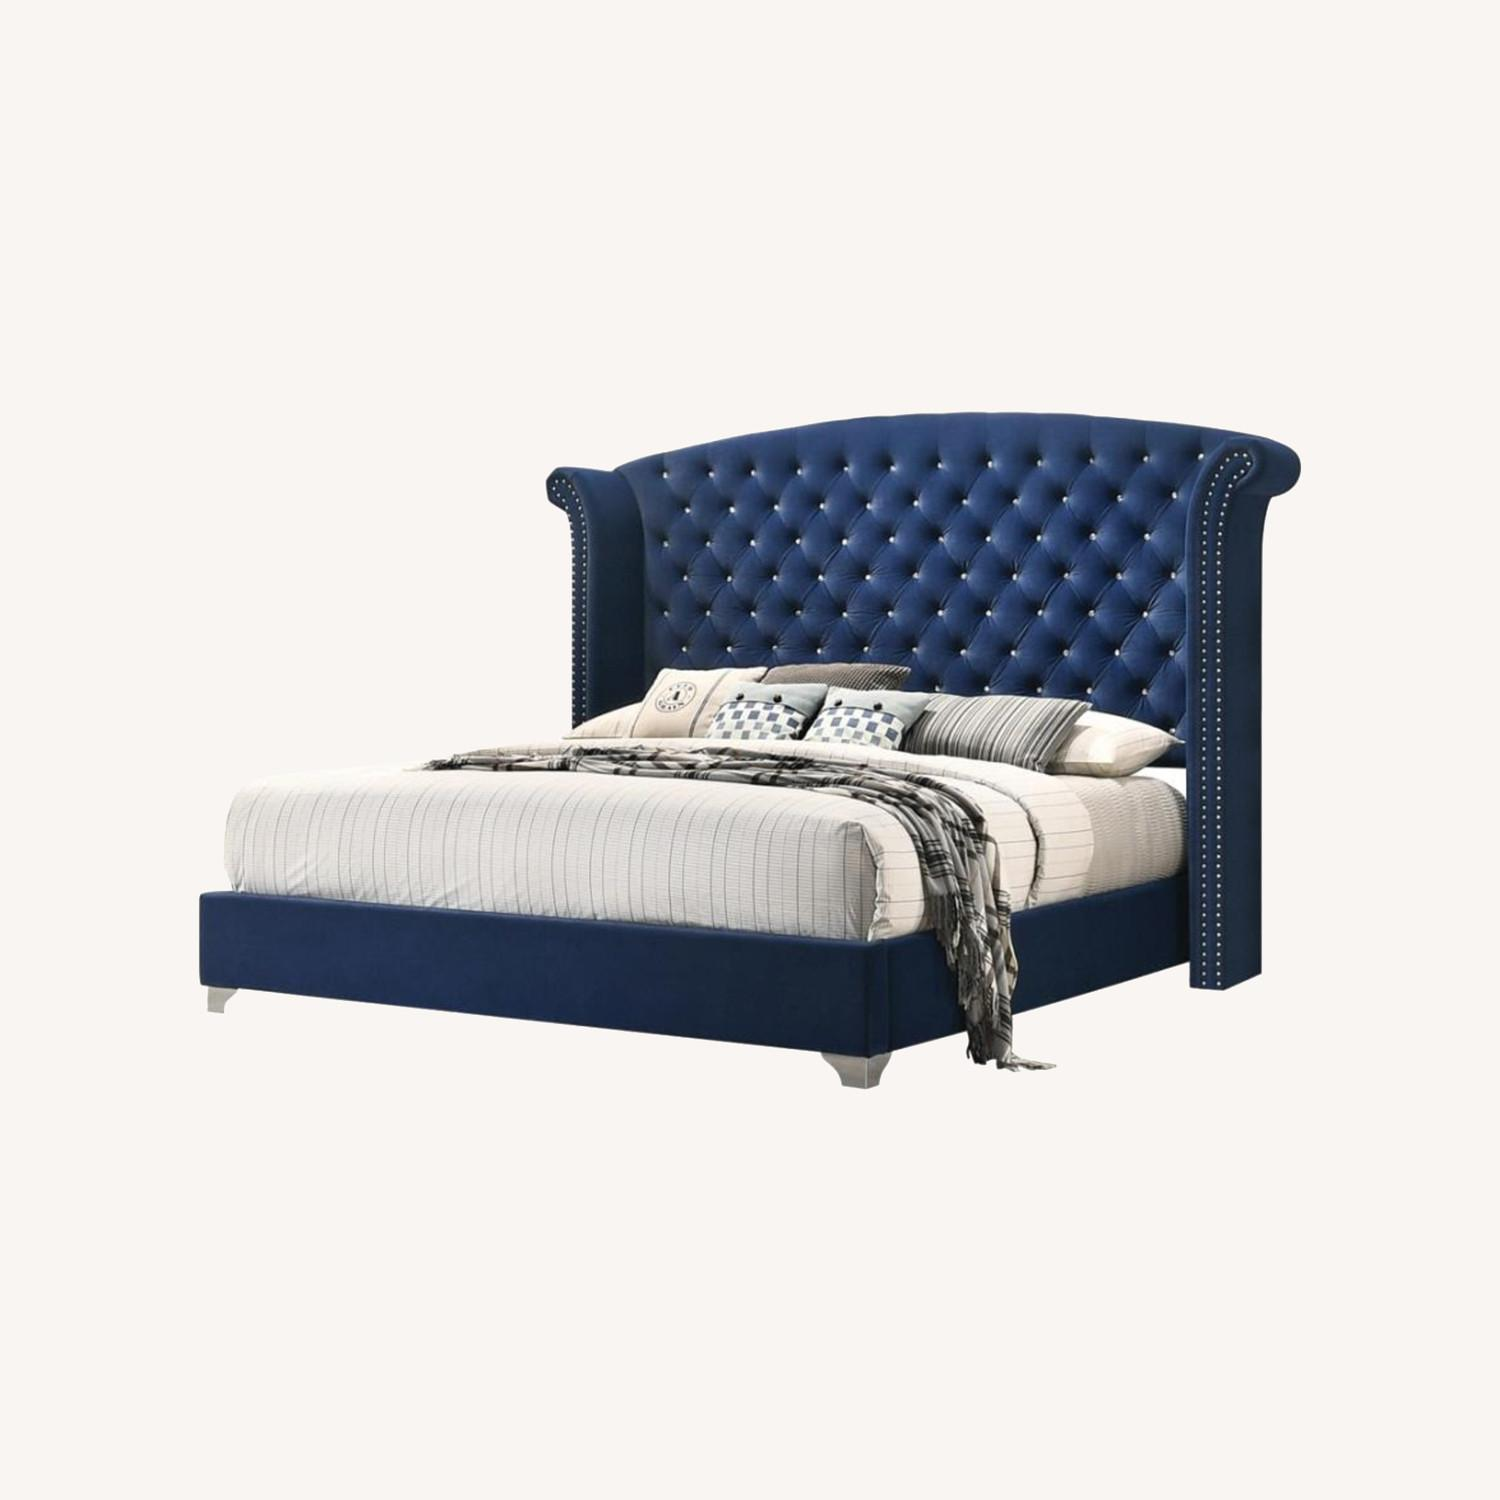 Queen Bed In Pacific Blue Matte Velvet Upholstery - image-3